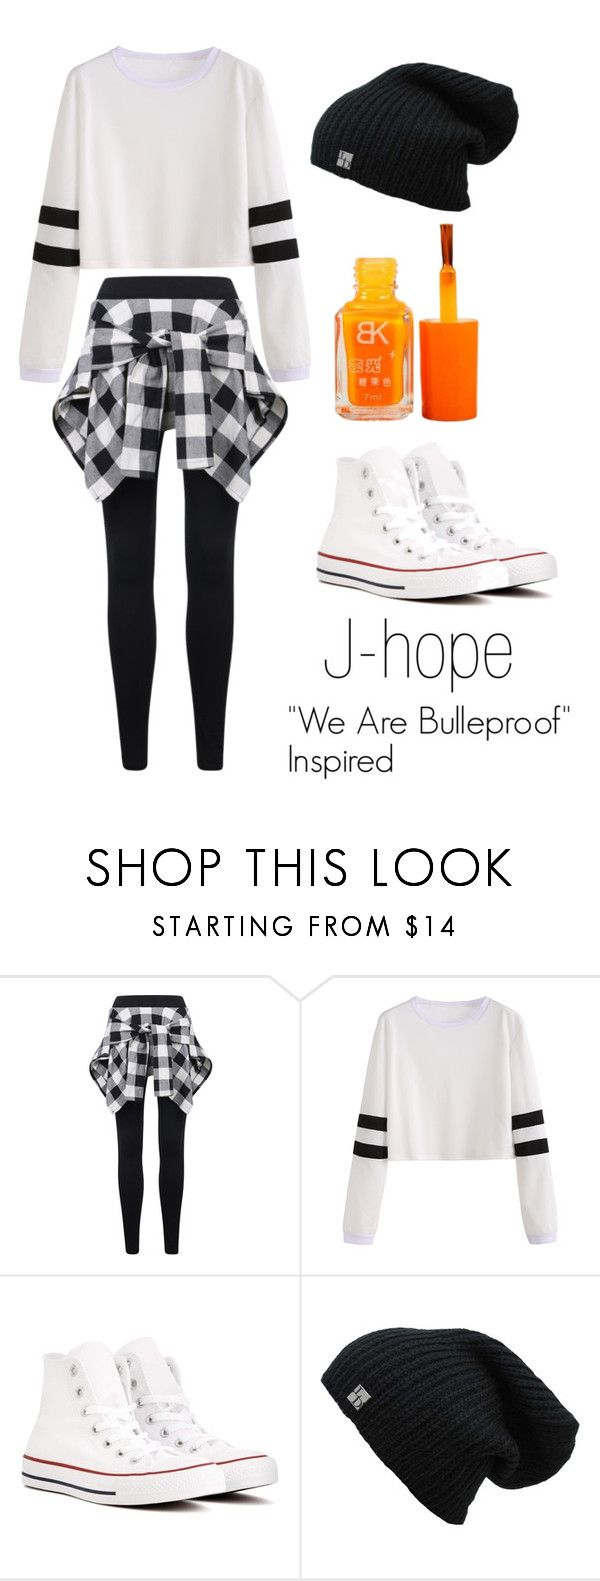 """J-hope ""We Are Bulletproof"" Inspired Outfit"" by mochimchimus ❤ liked on Polyvore featuring Converse and bts"